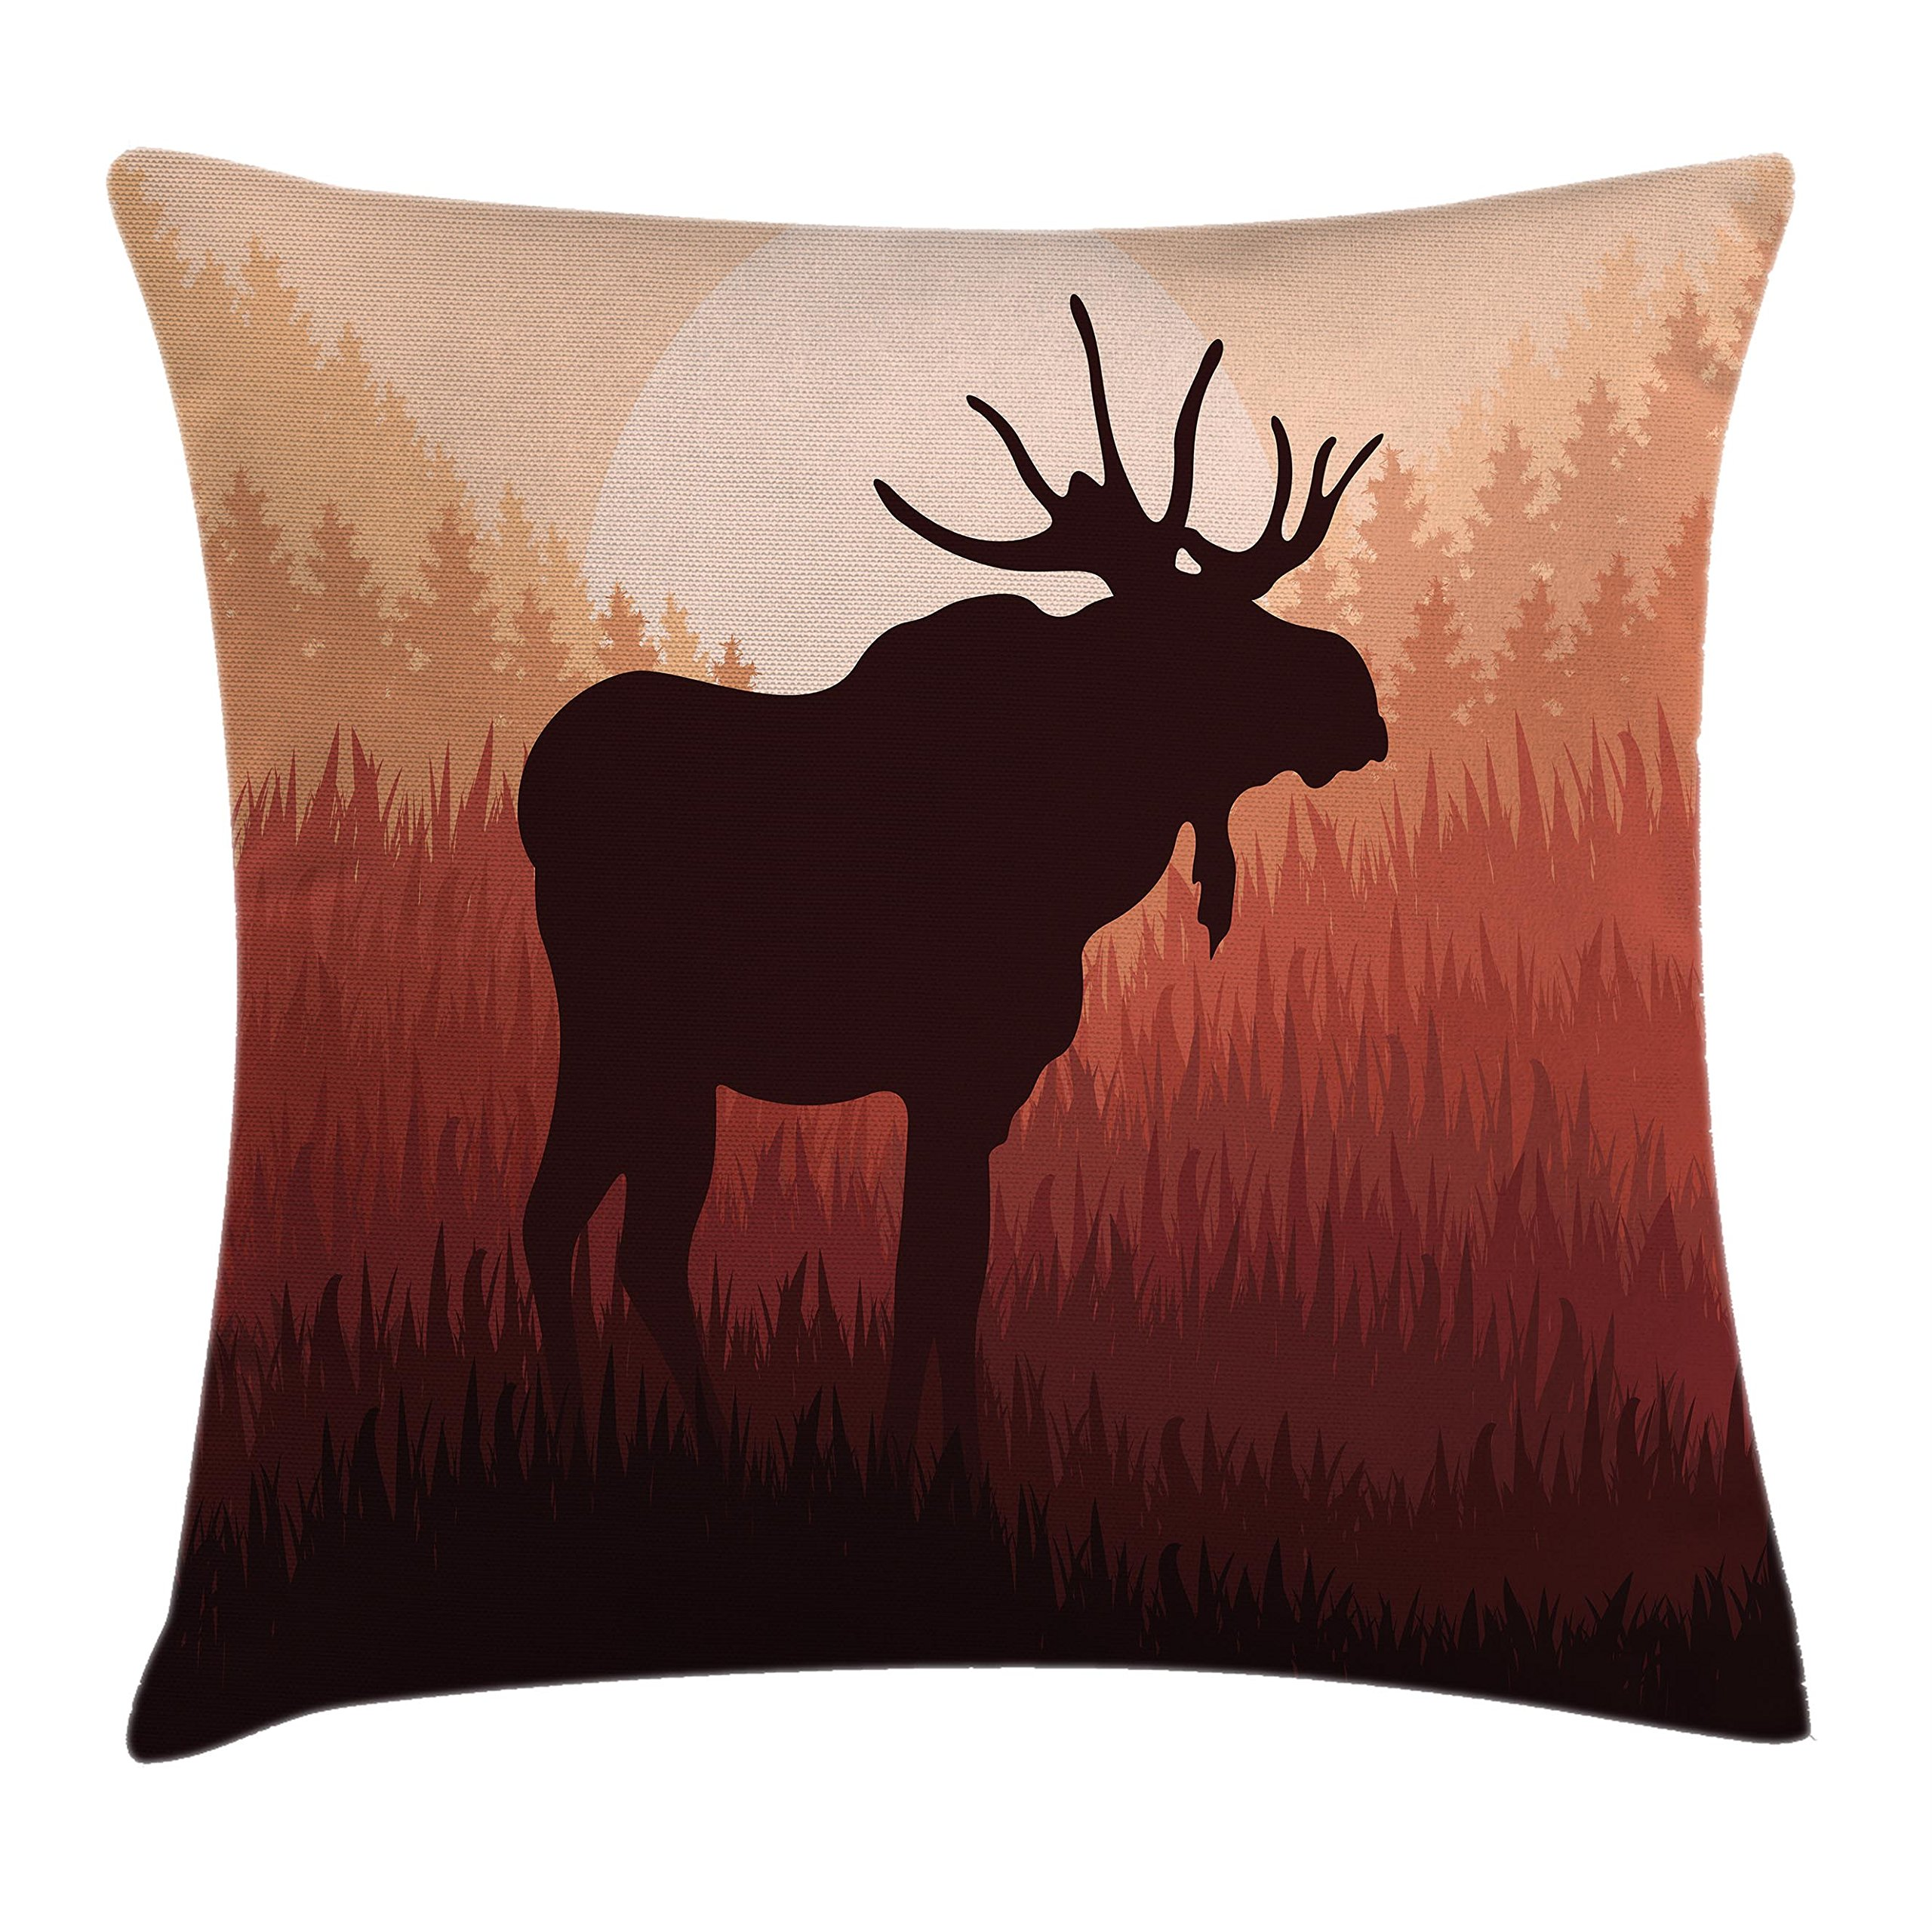 Ambesonne Moose Throw Pillow Cushion Cover, Antlers in Wild Alaska Forest Rusty Abstract Landscape Design Deer Theme Woods, Decorative Square Accent Pillow Case, 16 X 16 inches, Peach and Brown by Ambesonne (Image #1)